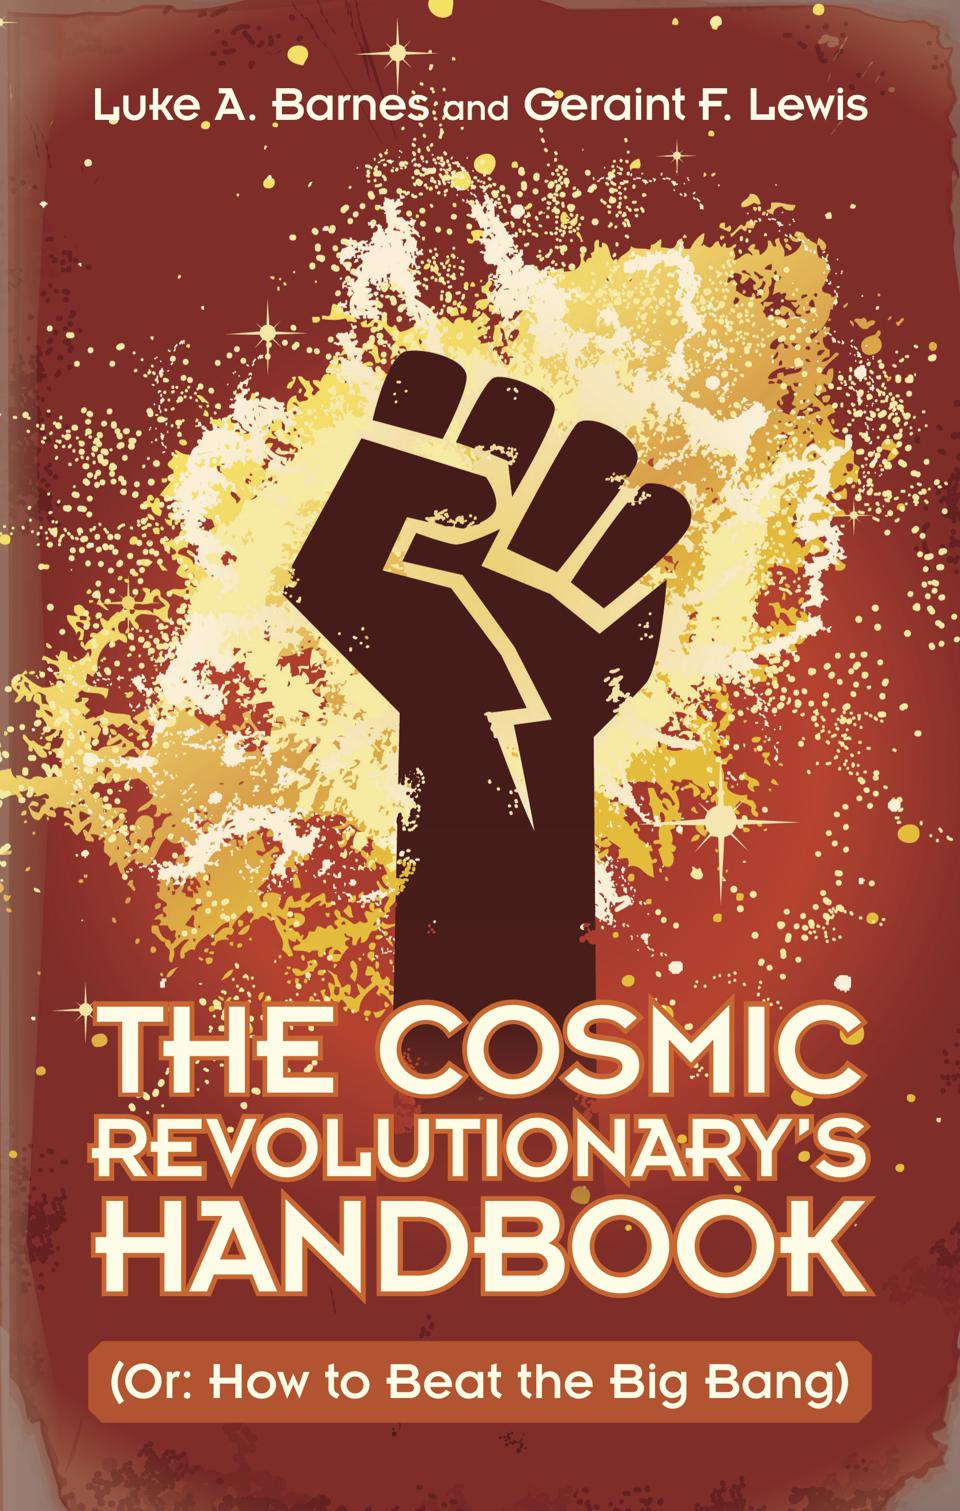 The Cosmic Revolutionary's Handbook (Or: How to Beat the Big Bang) By Luke A. Barnes and Geraint F. Lewis